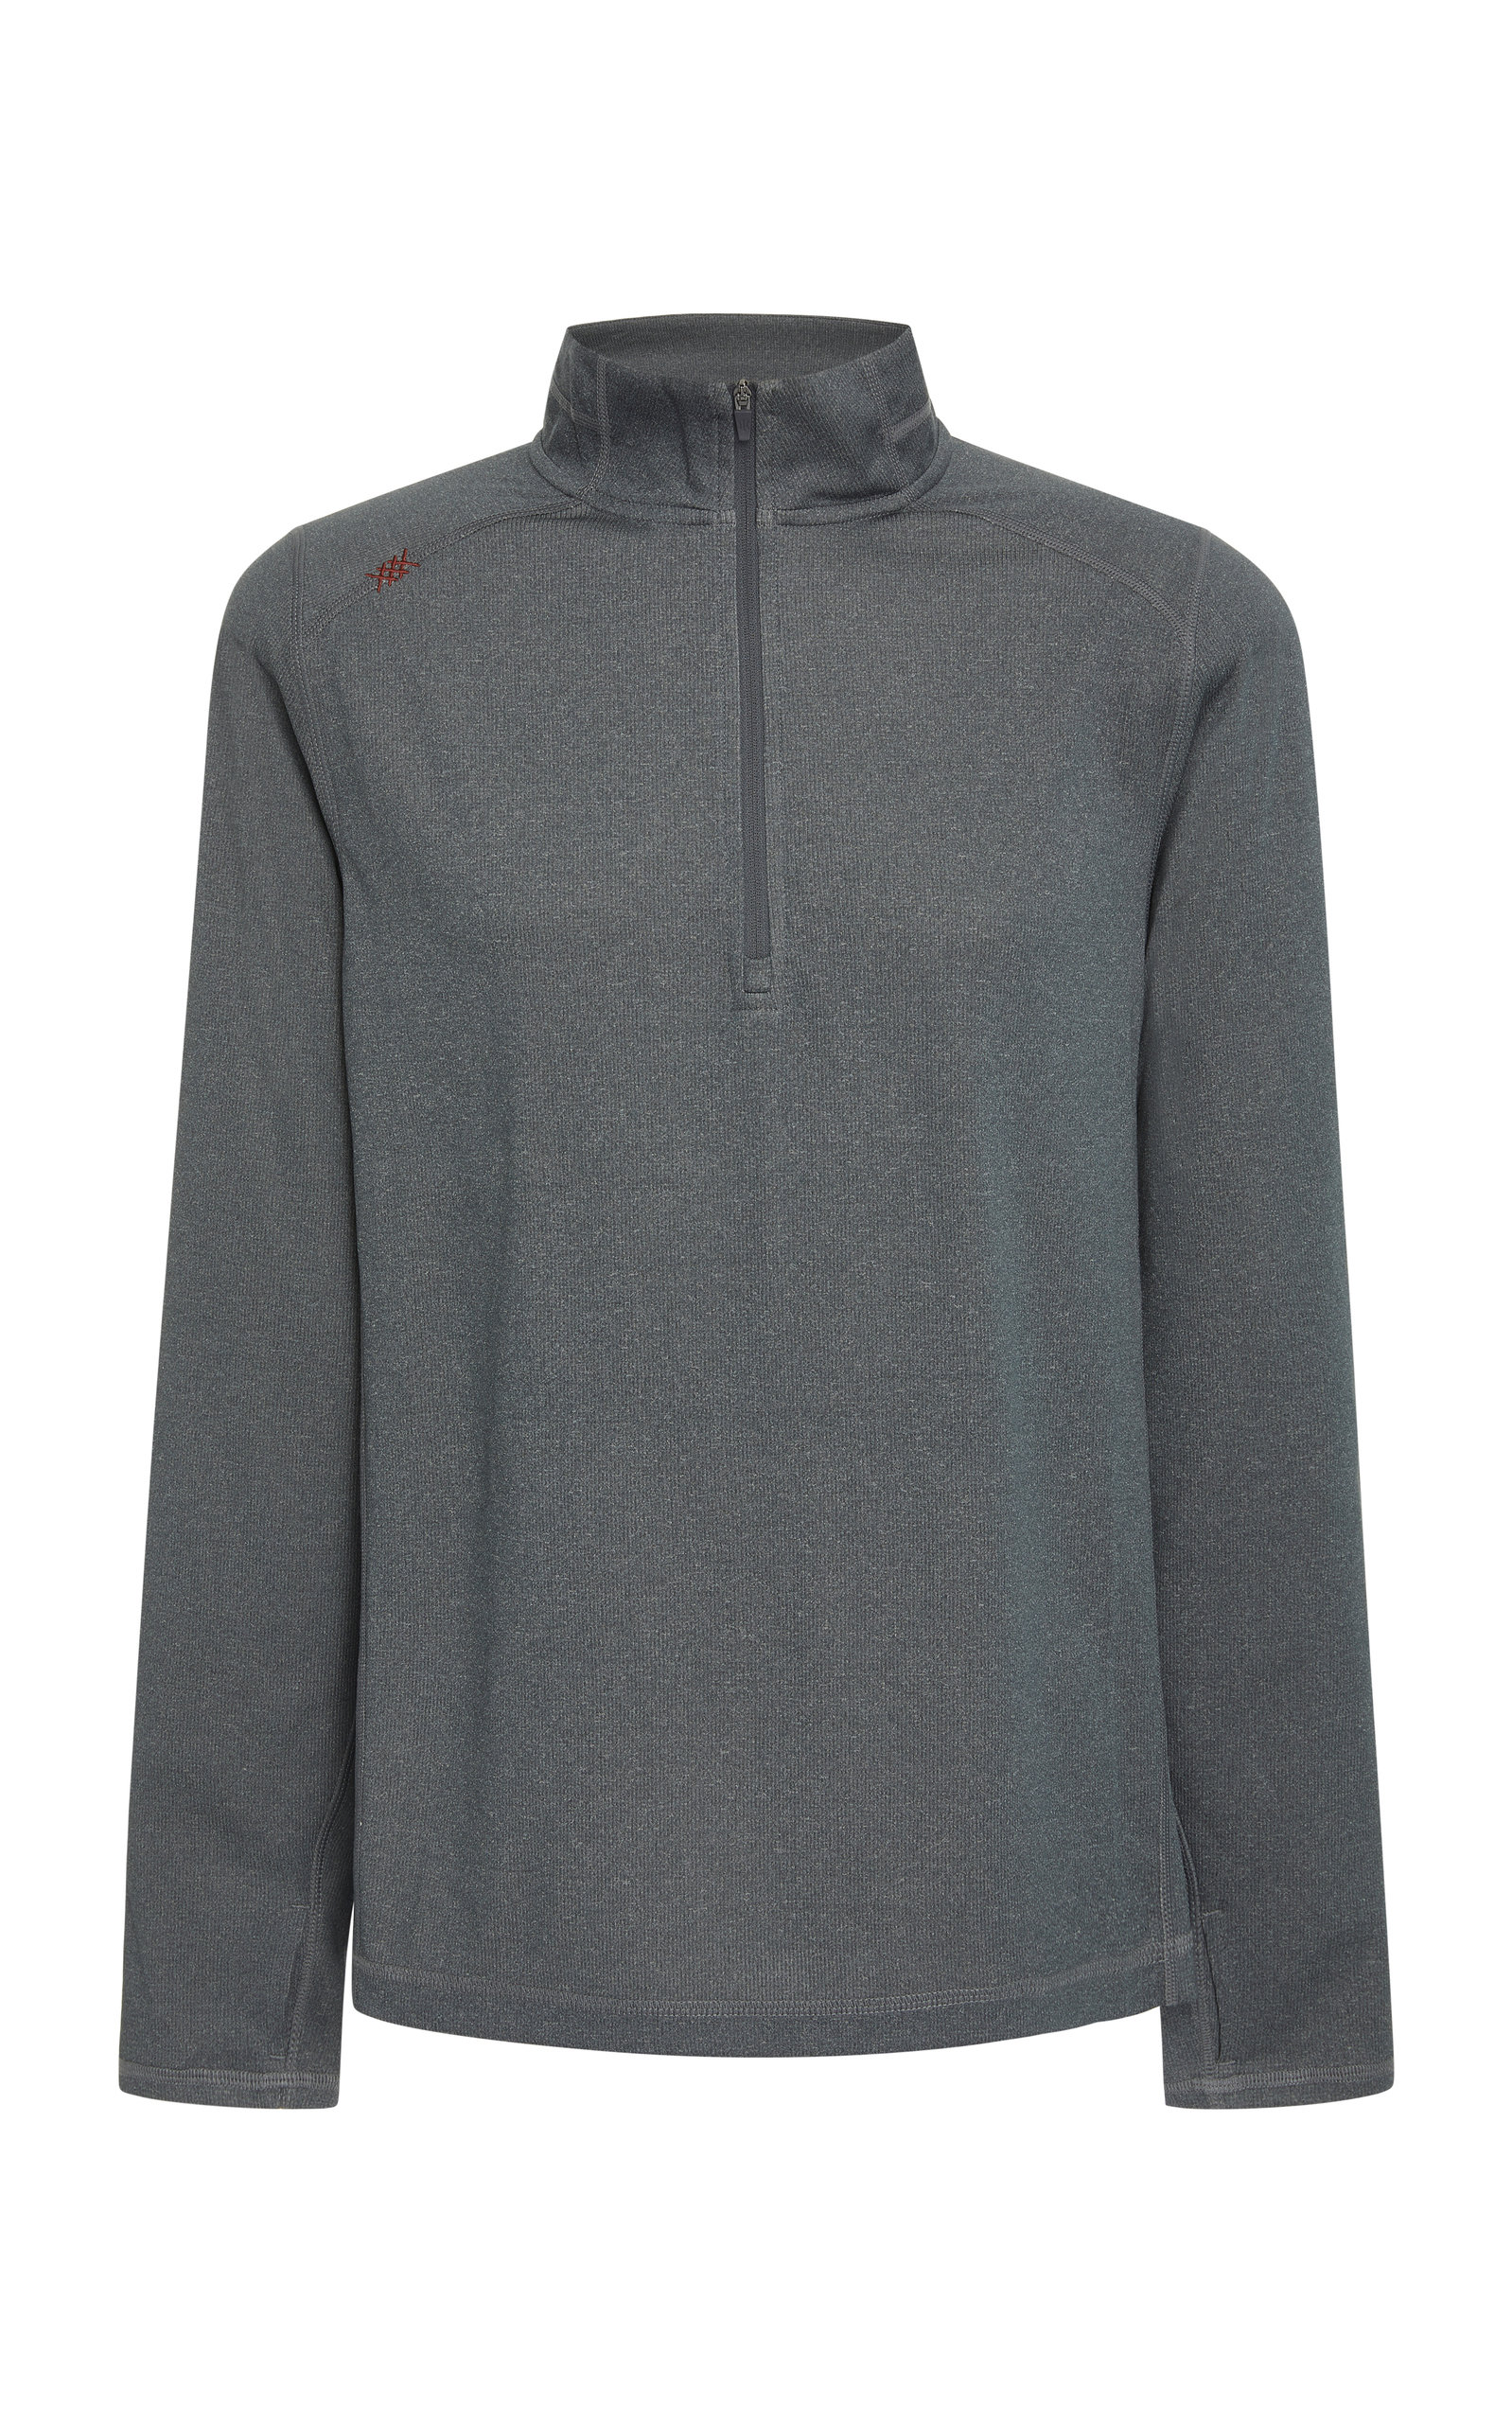 RHONE SEQUOIA PULLOVER WITH ZIP